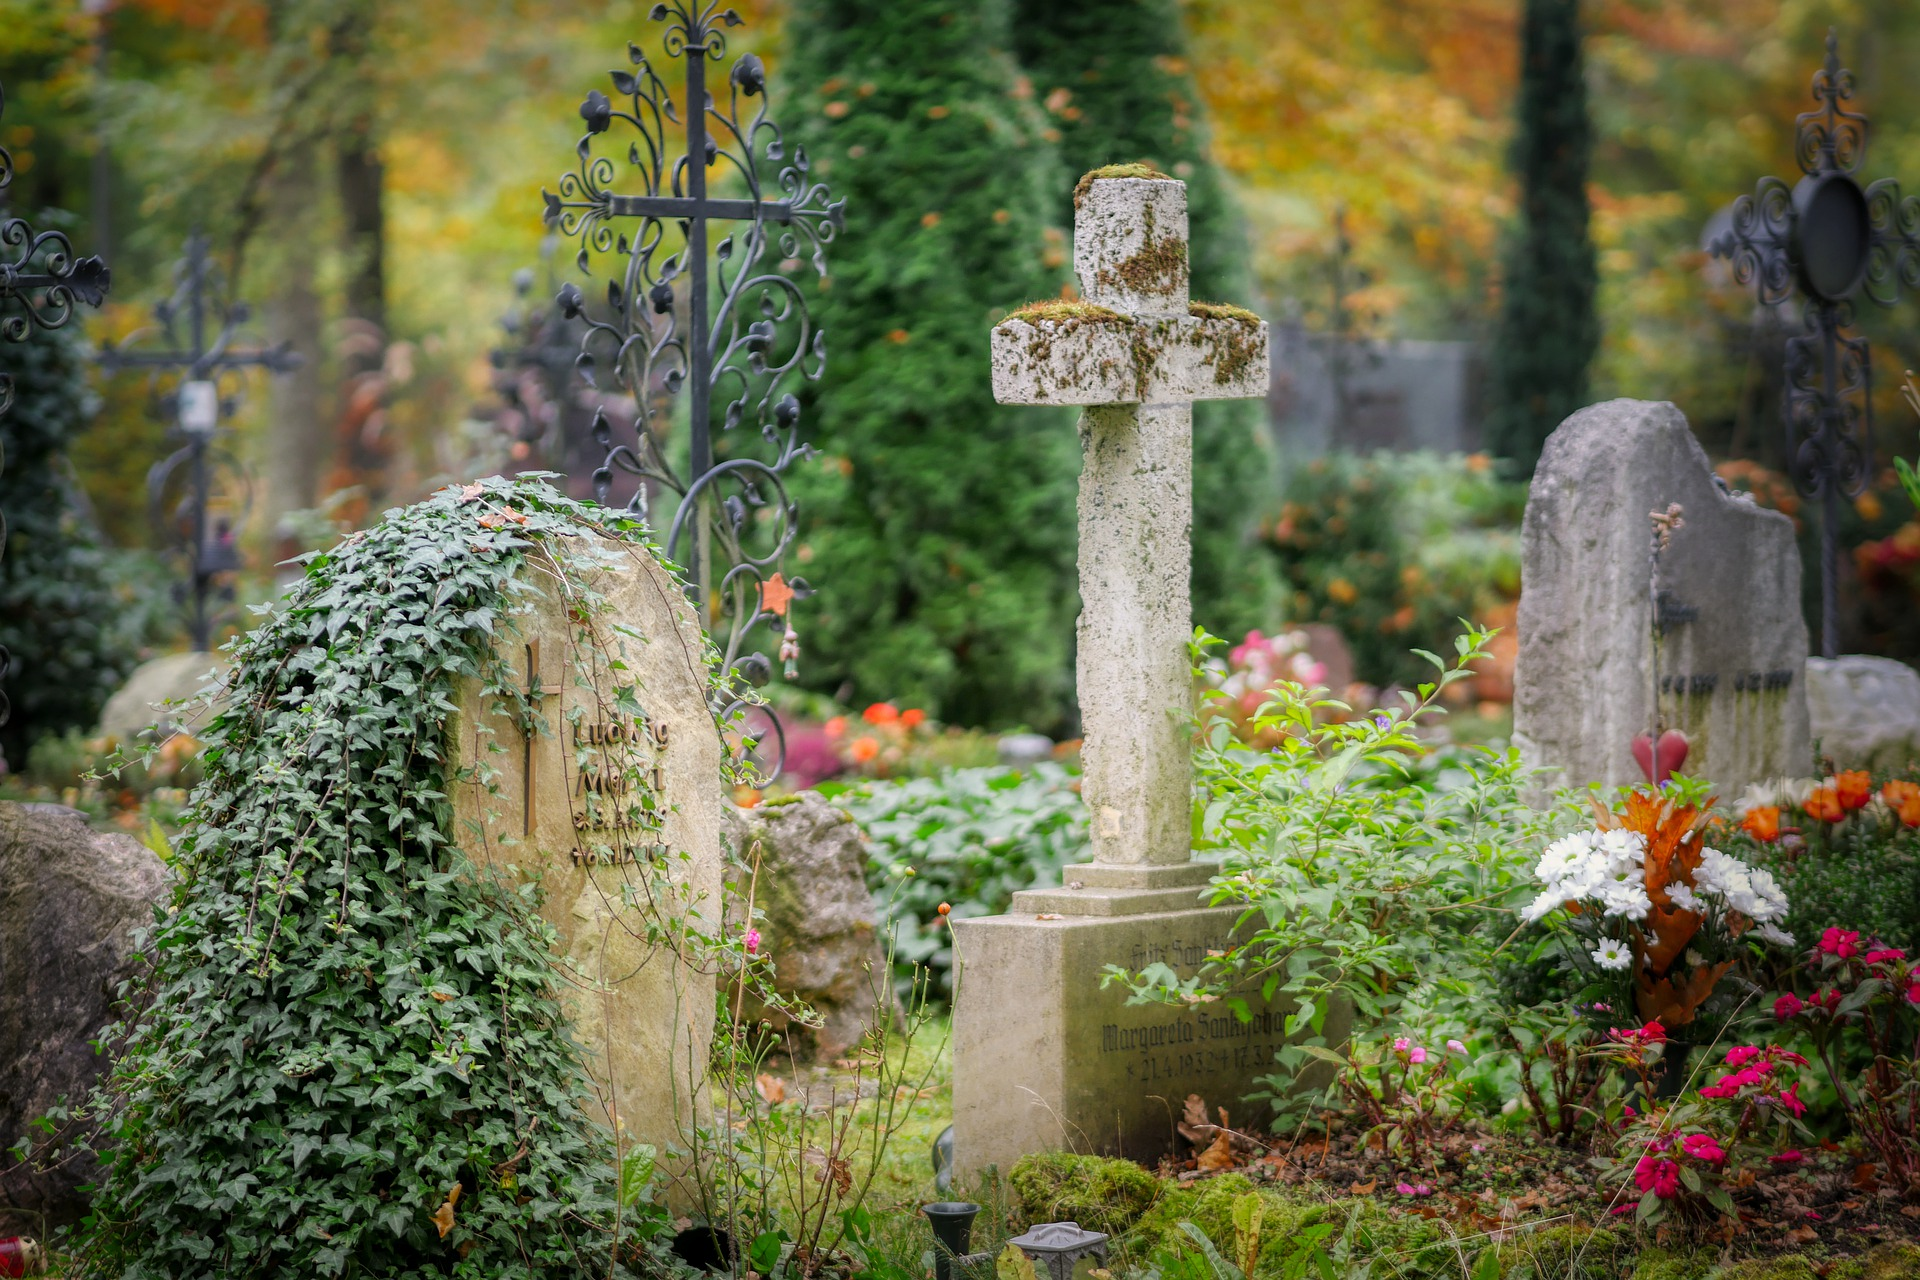 A picture of a stone cross and grave stone.